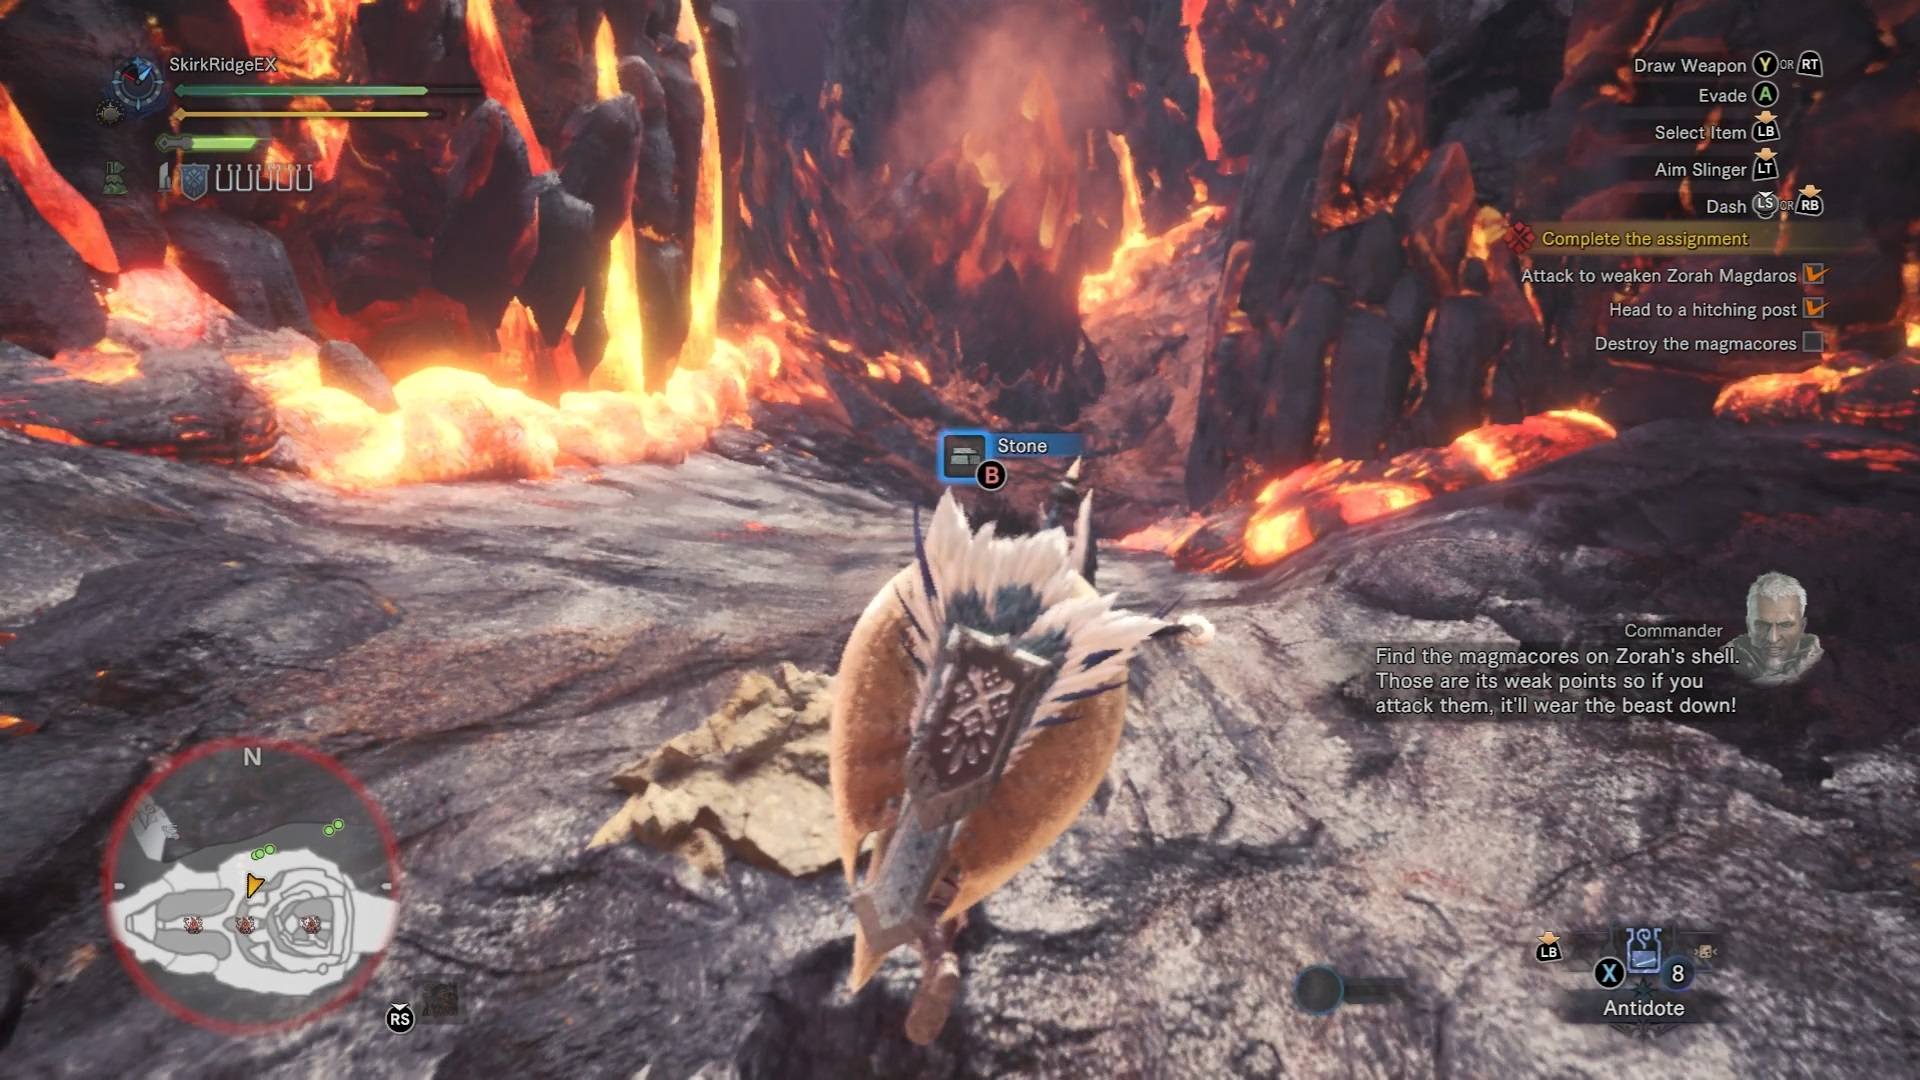 Player is looking at one of Zorah Magdaros' cores